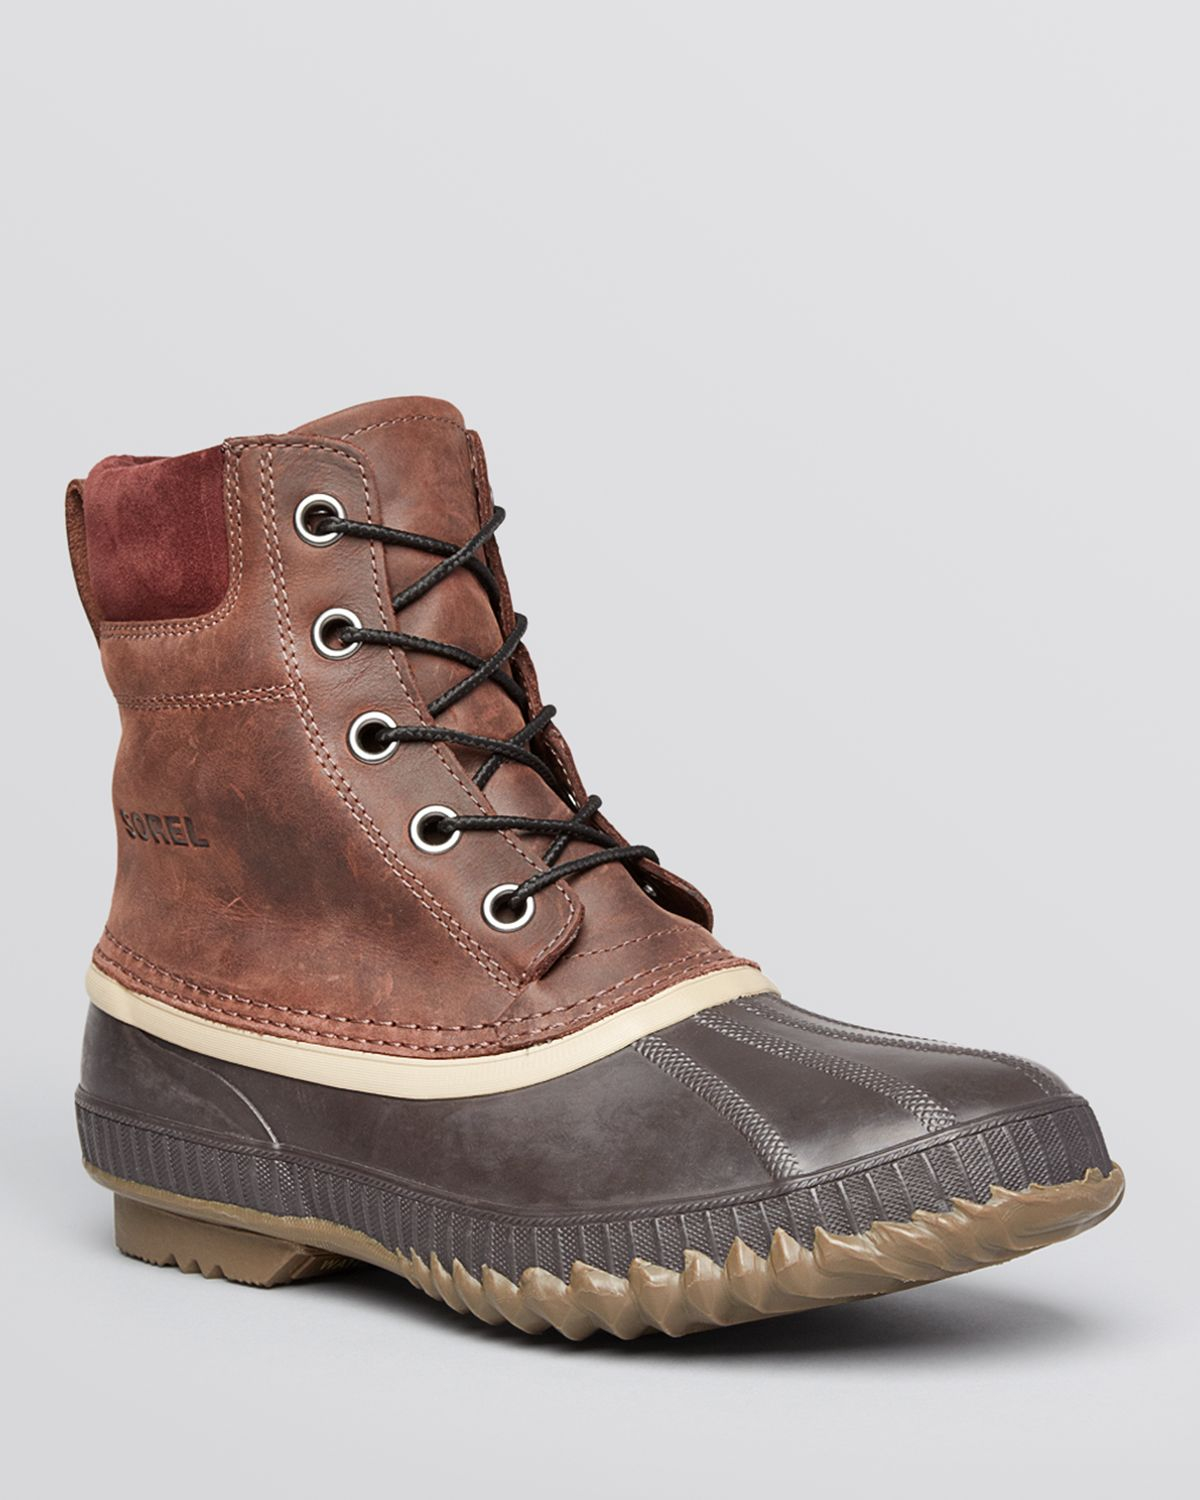 Sorel Cheyanne Waterproof Boots in Brown for Men